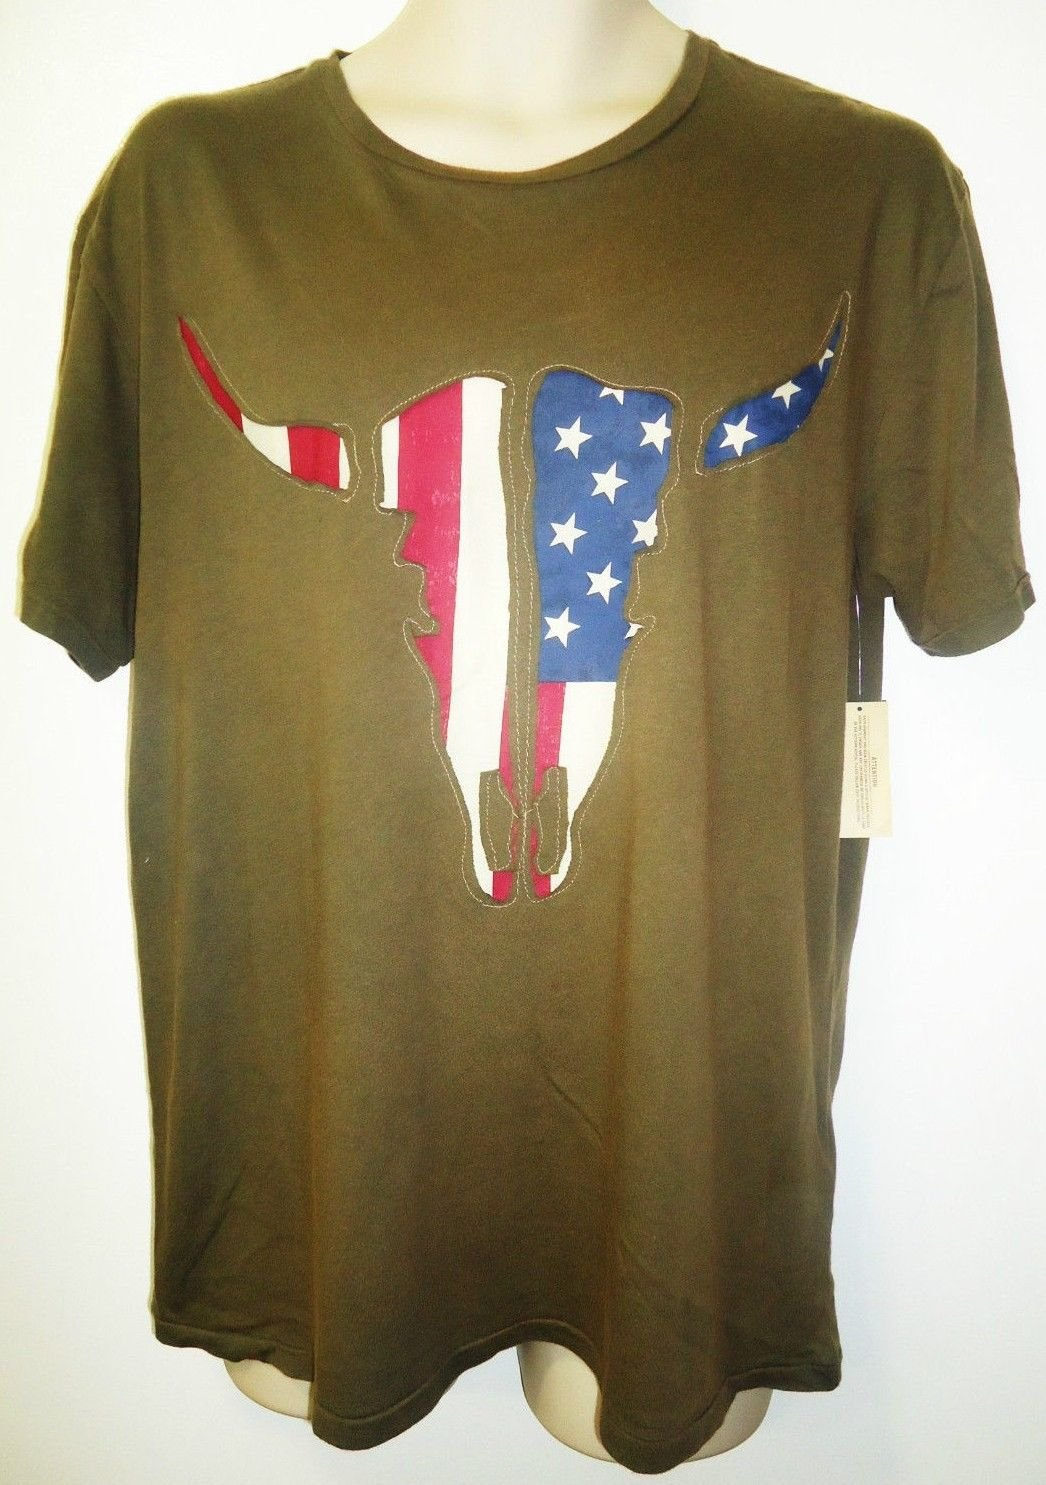 RALPH LAUREN - POLO - DSRL - TEXAS - LONGHORN - FLAG - ARMY - GREEN - TEE - NEW